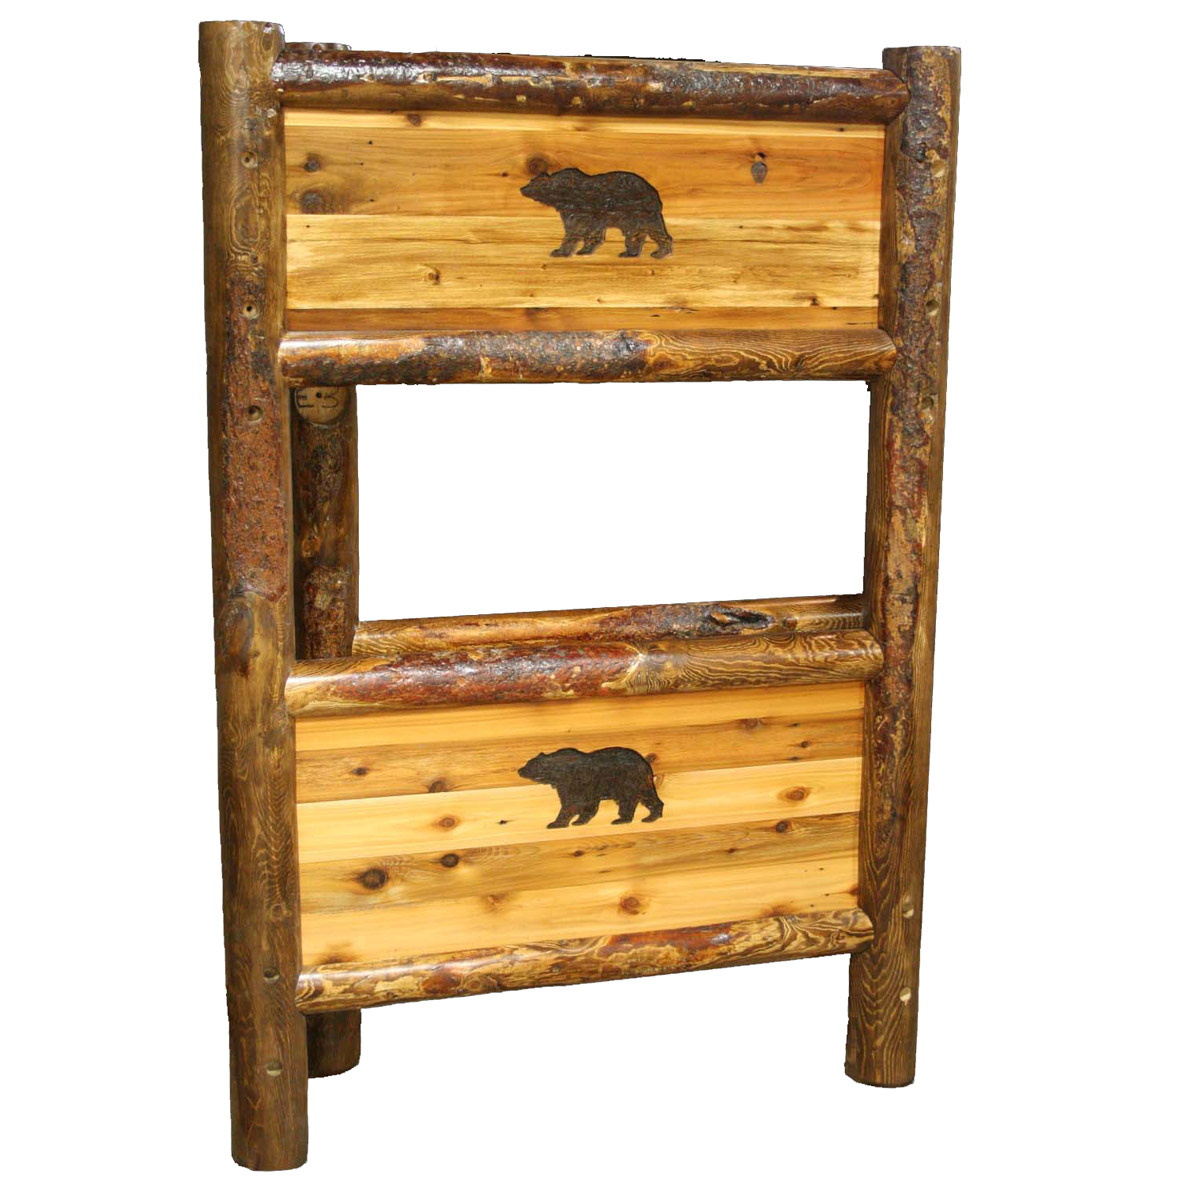 Black Forest Decor Barnwood bunkbed with bear carving - t...